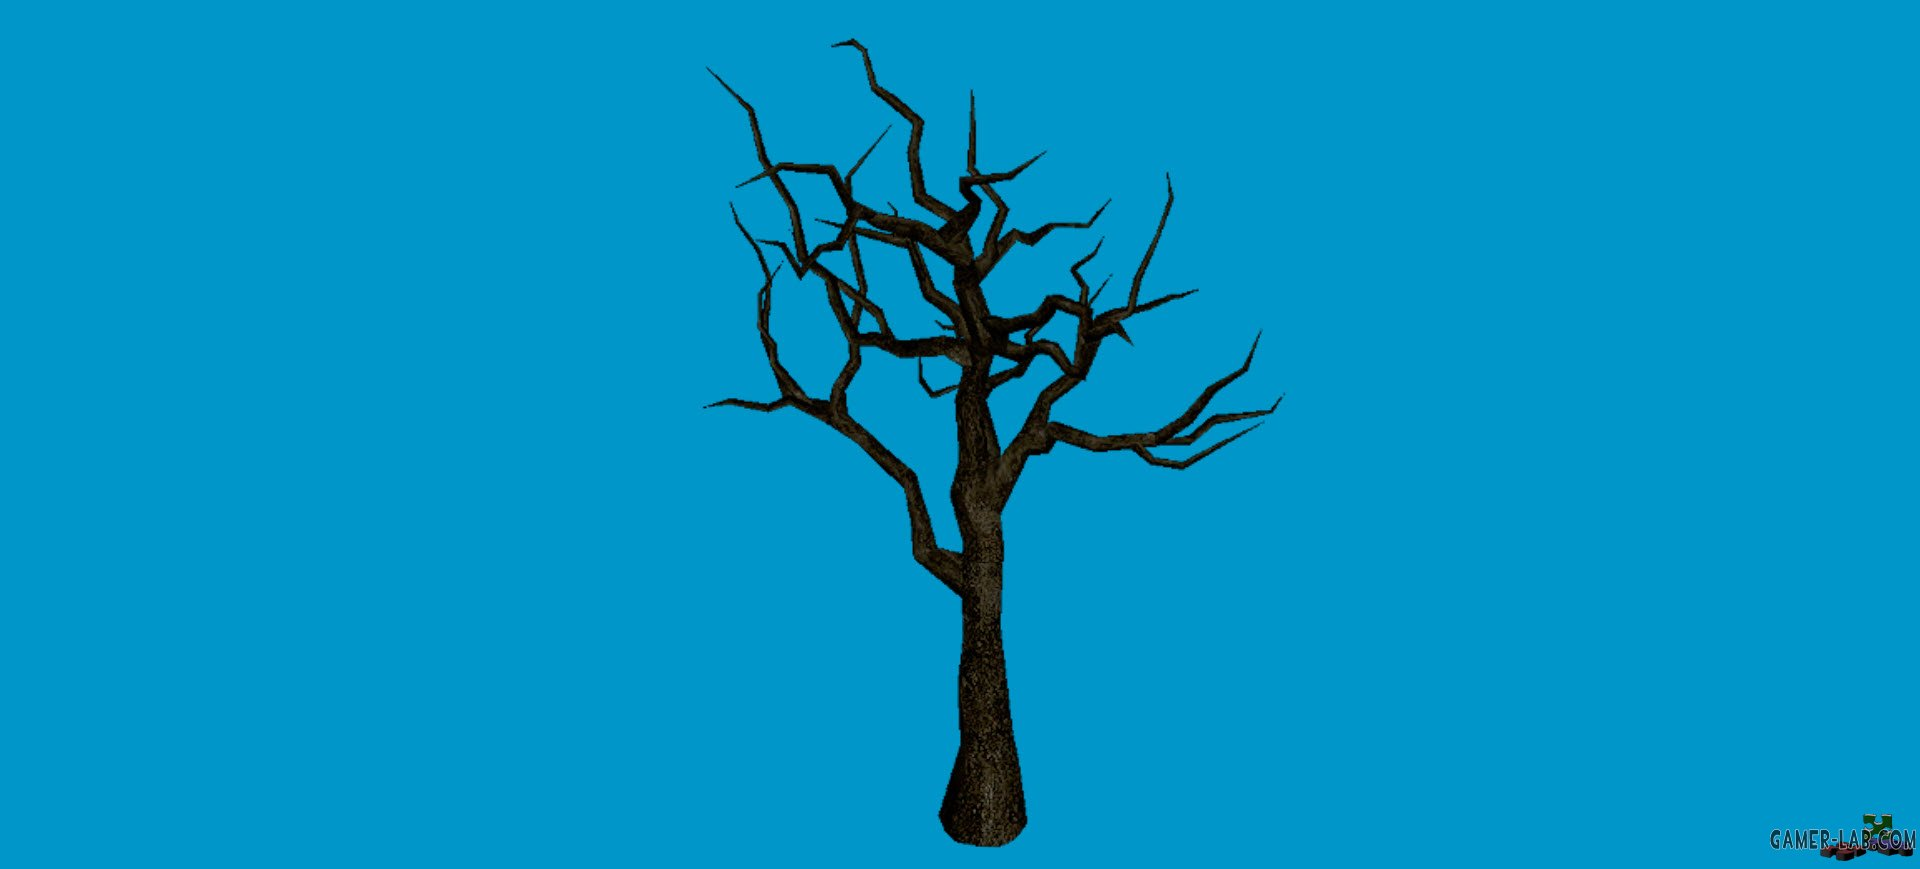 jn_eviltree_01_01_bb